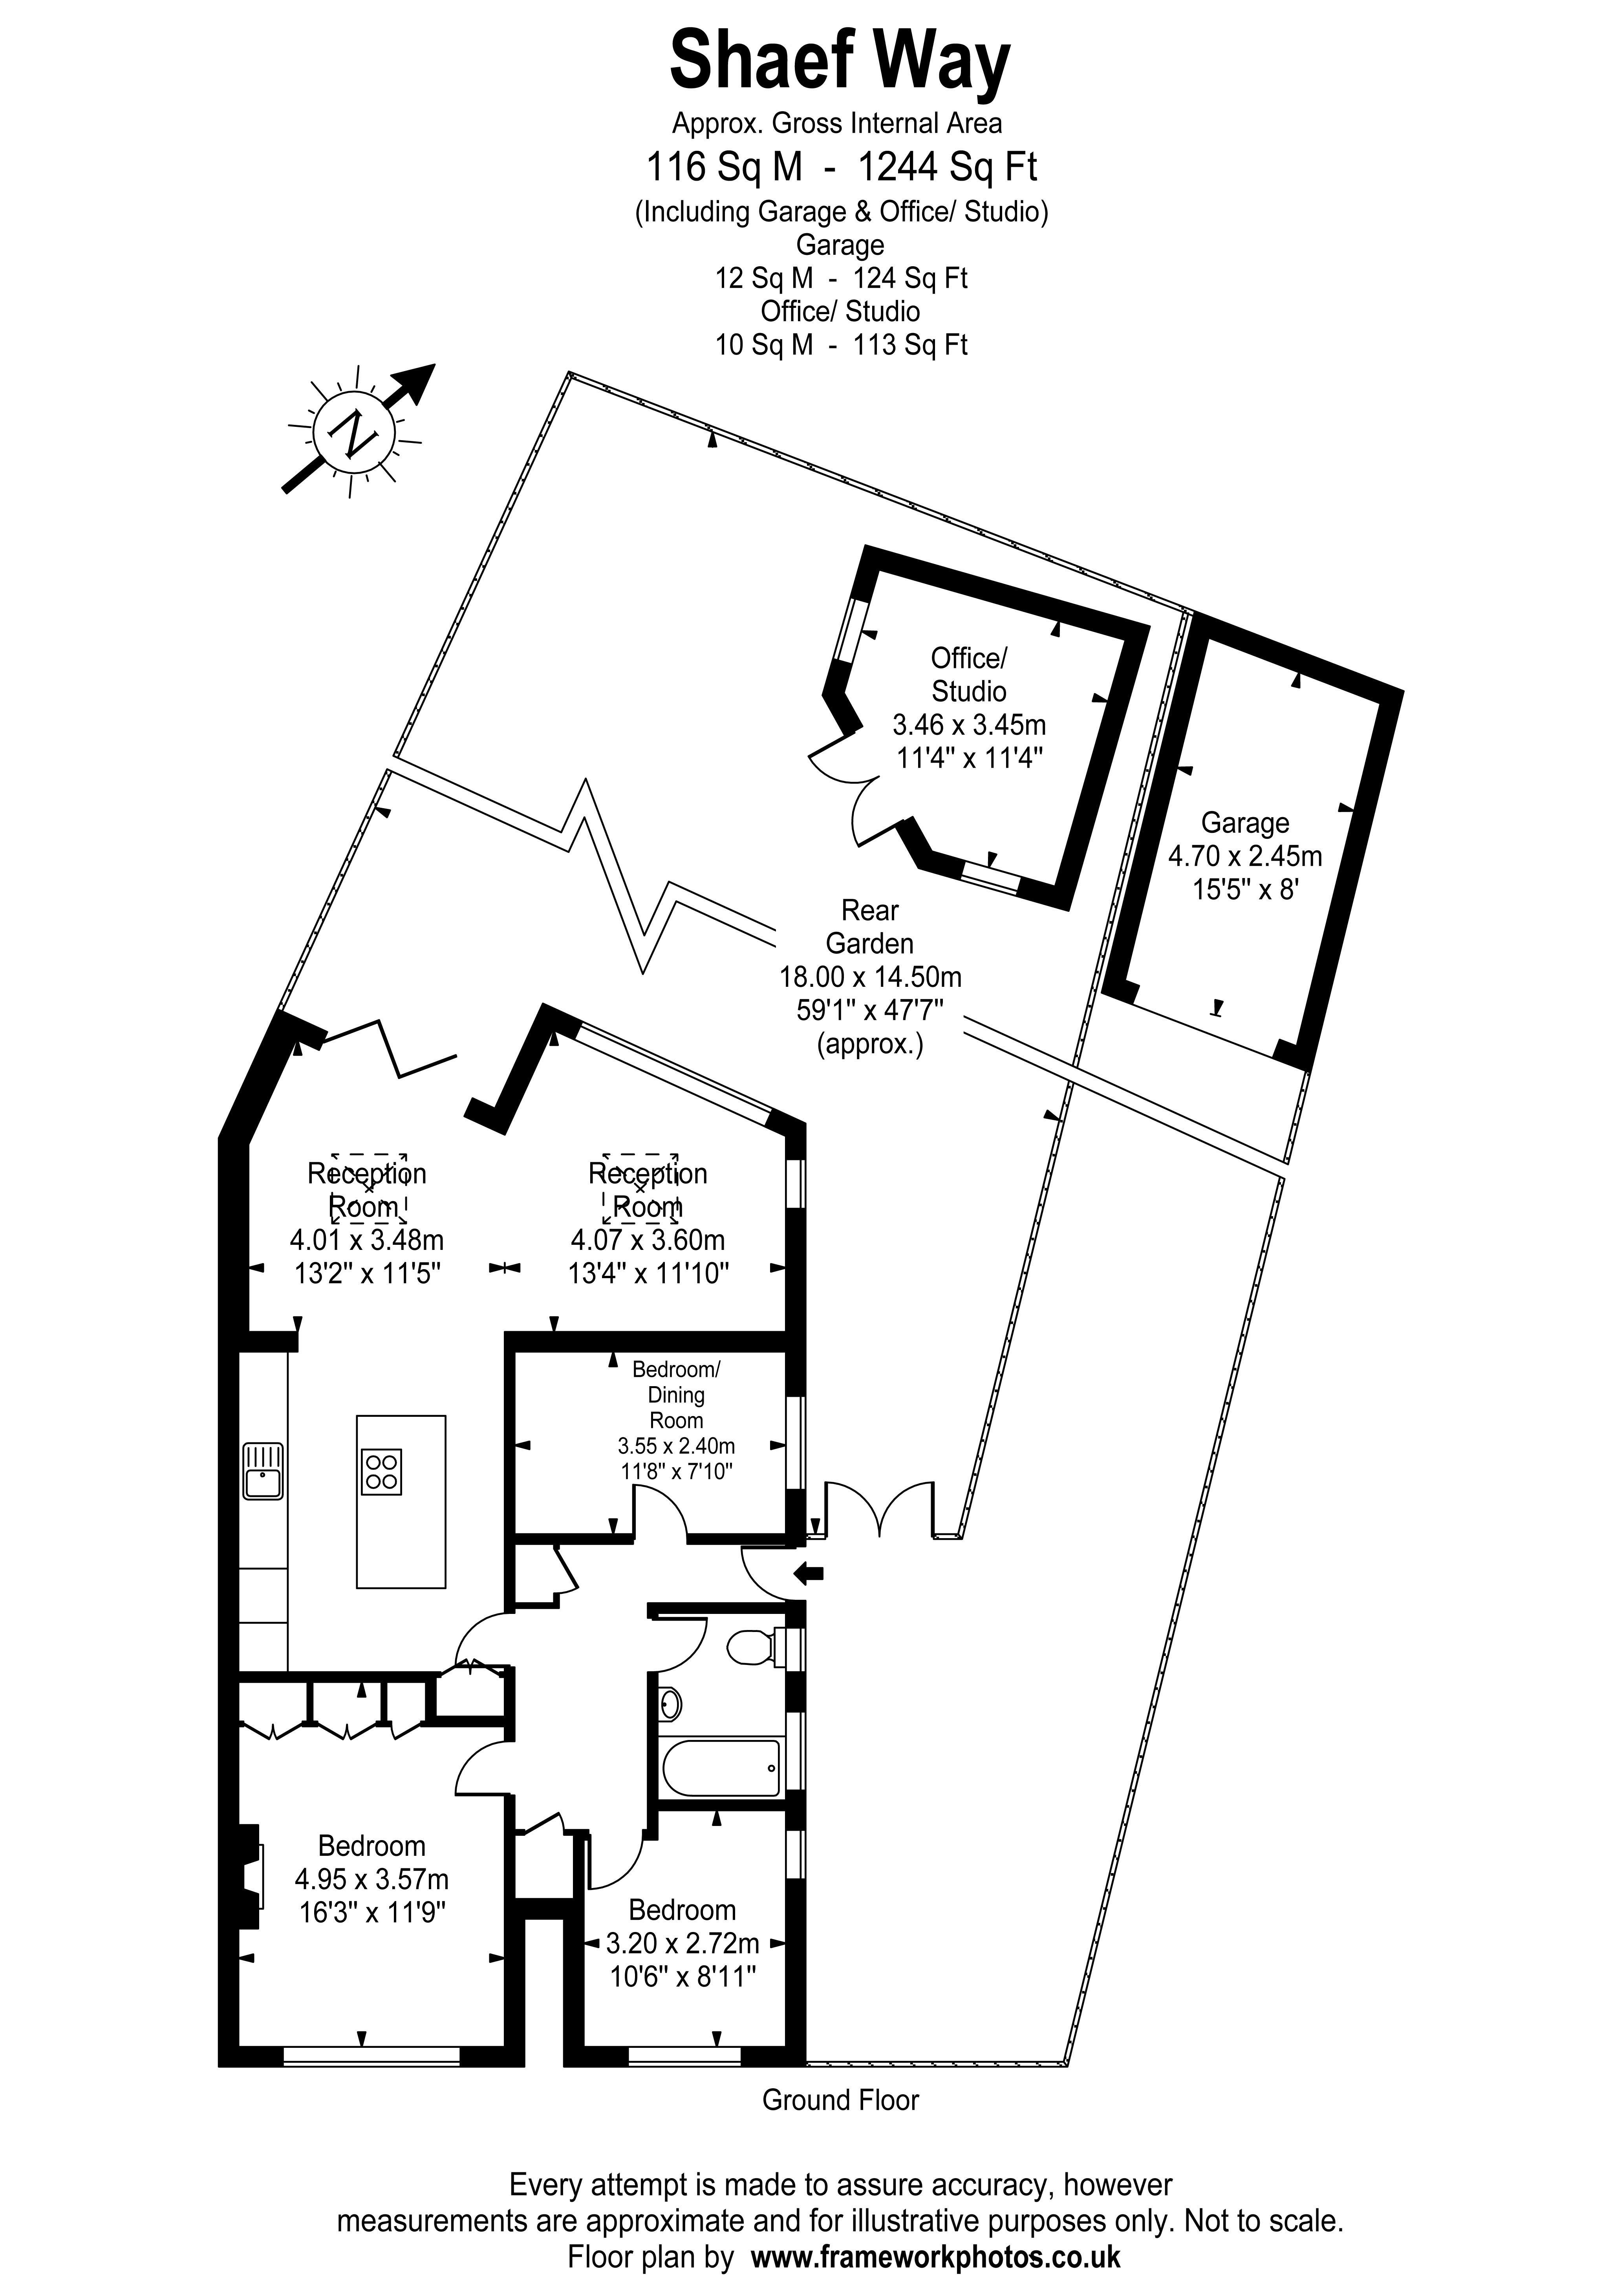 Floorplans For Shaef Way, Teddington